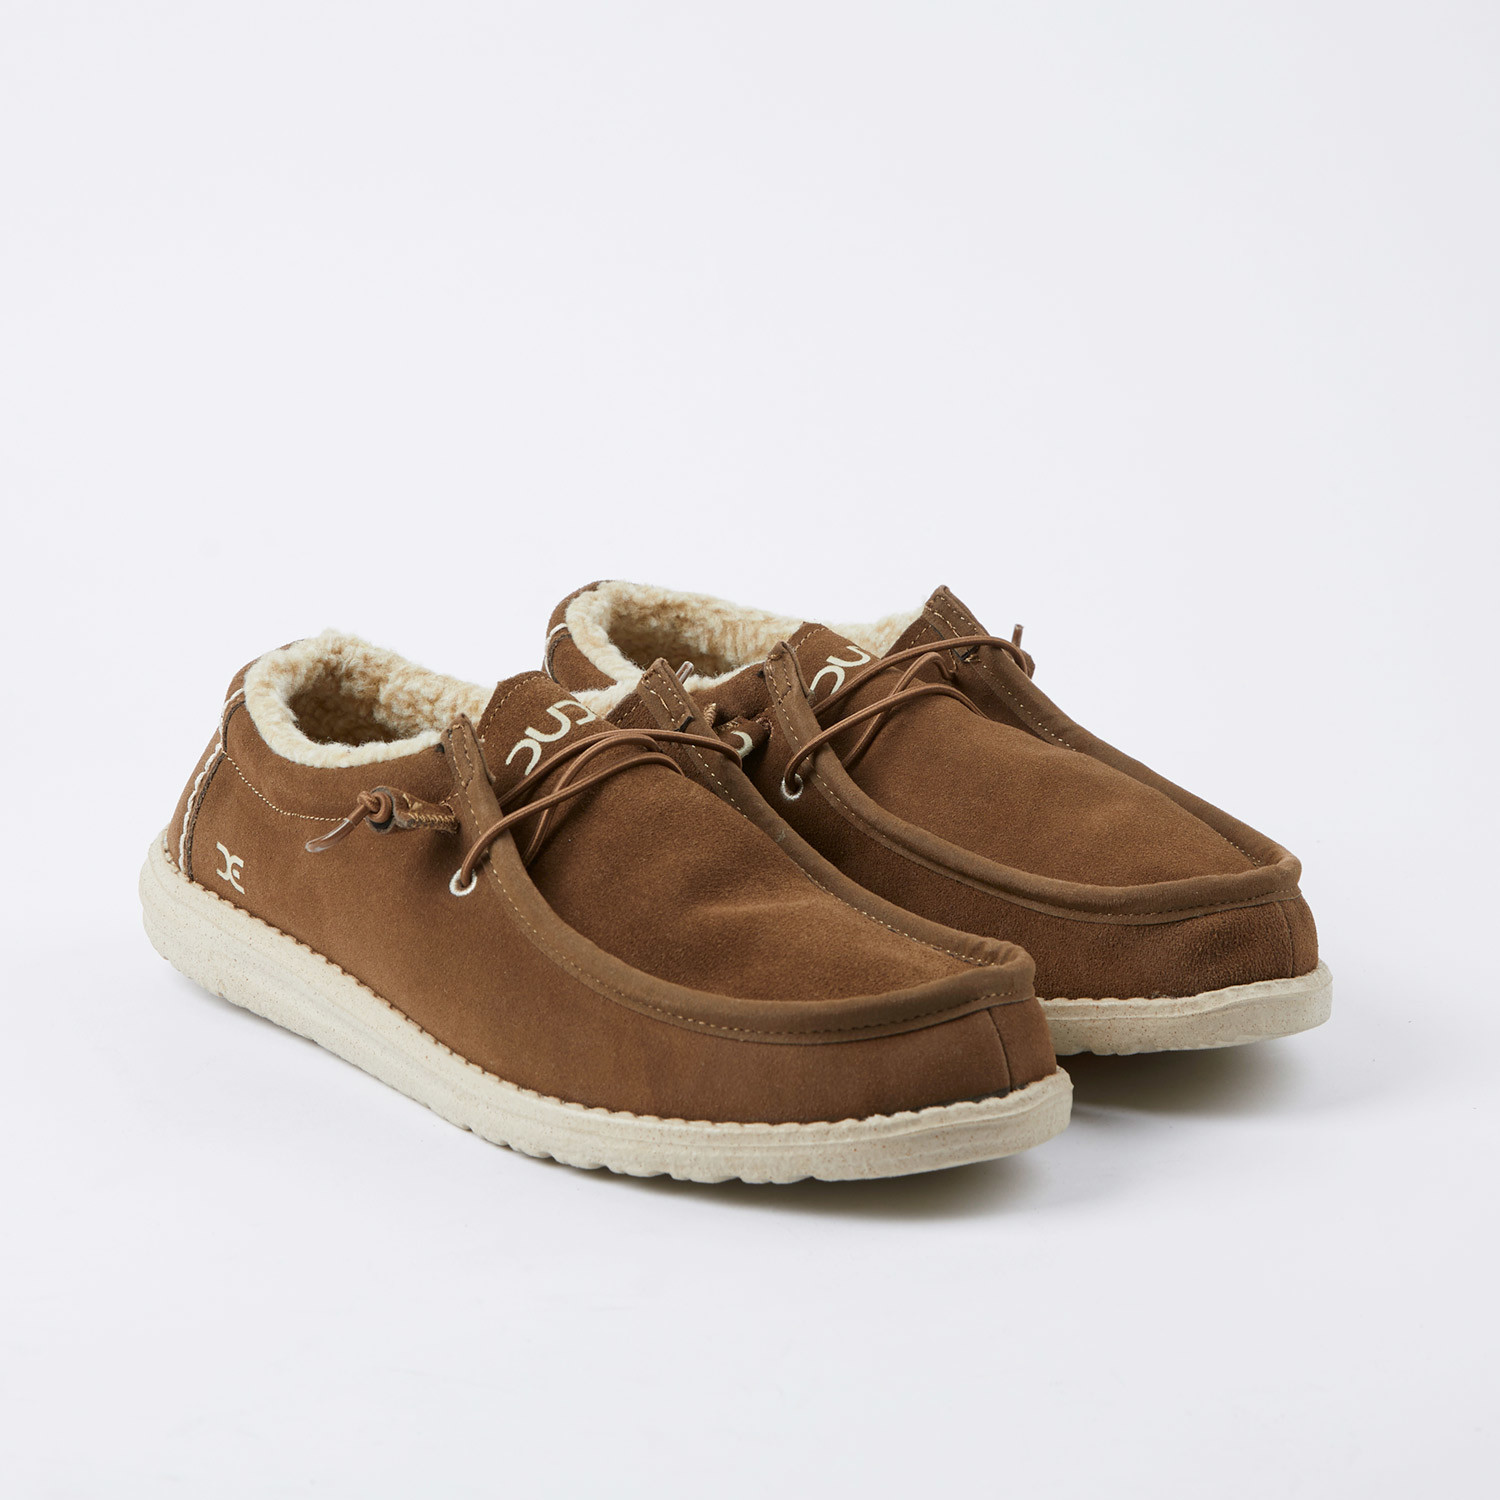 Wally Suede Shoe // Brown (US: 8) - Hey